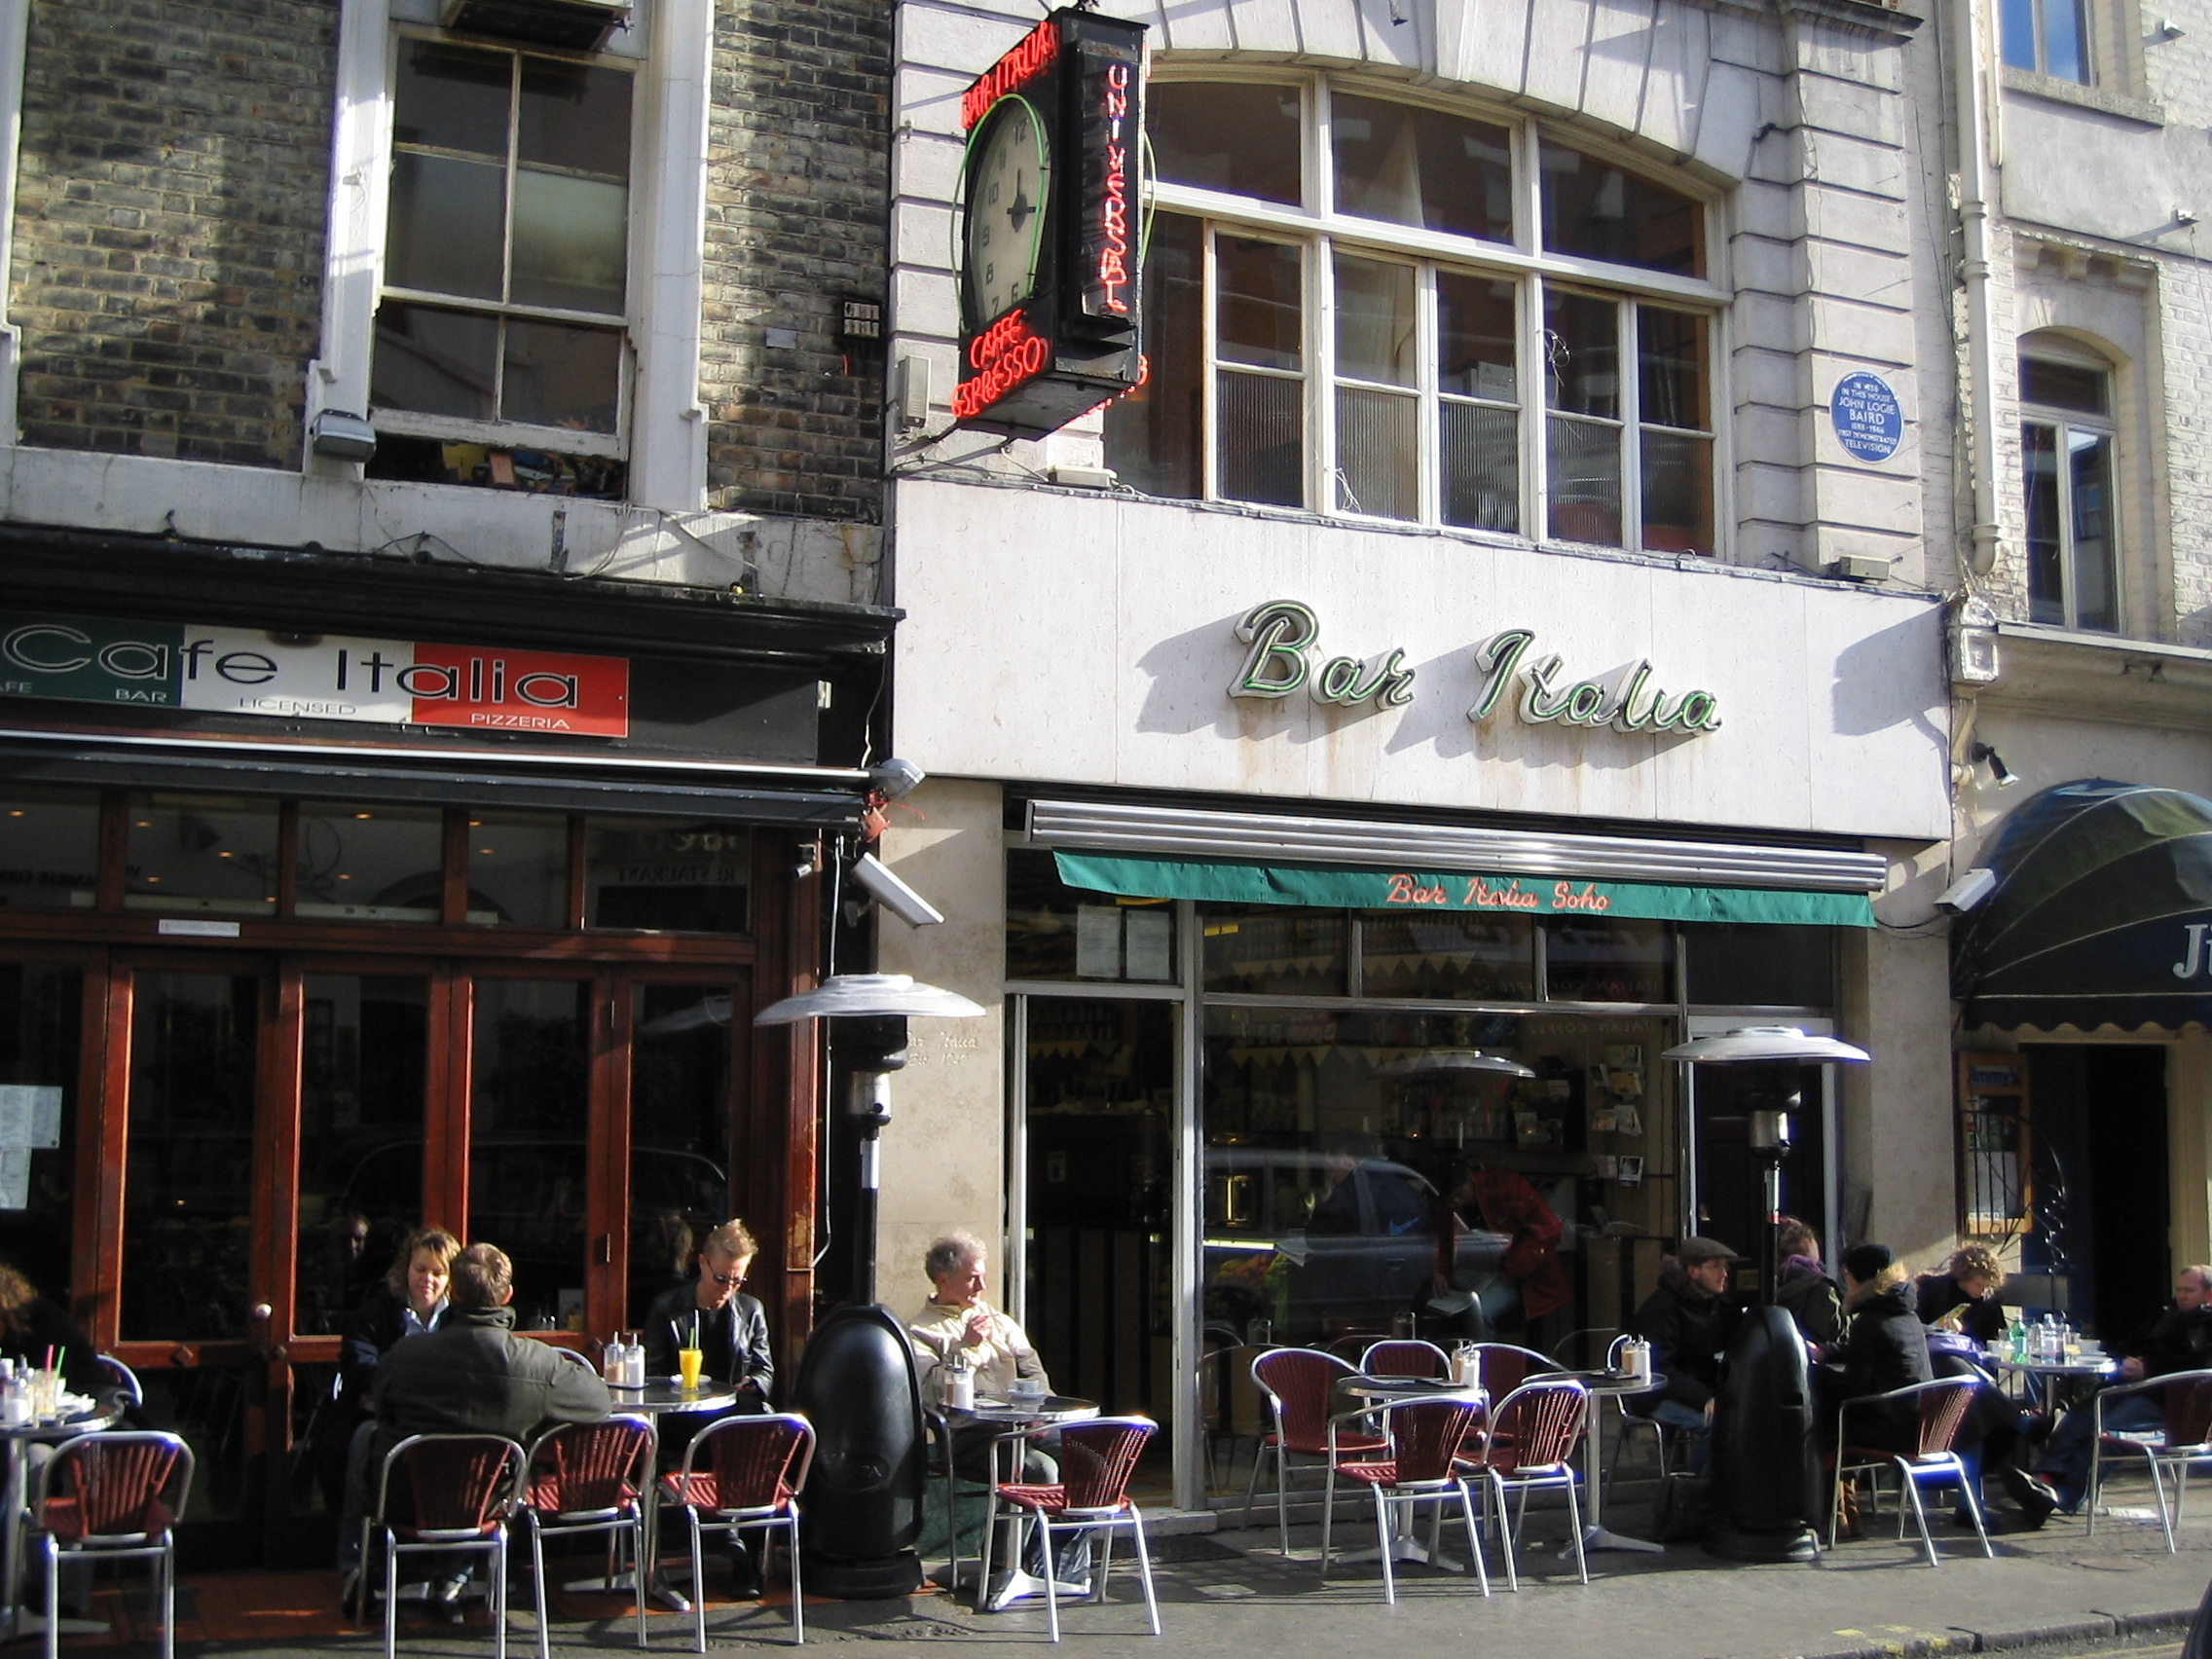 a good place for a cup of tea and a think: bar italia ...